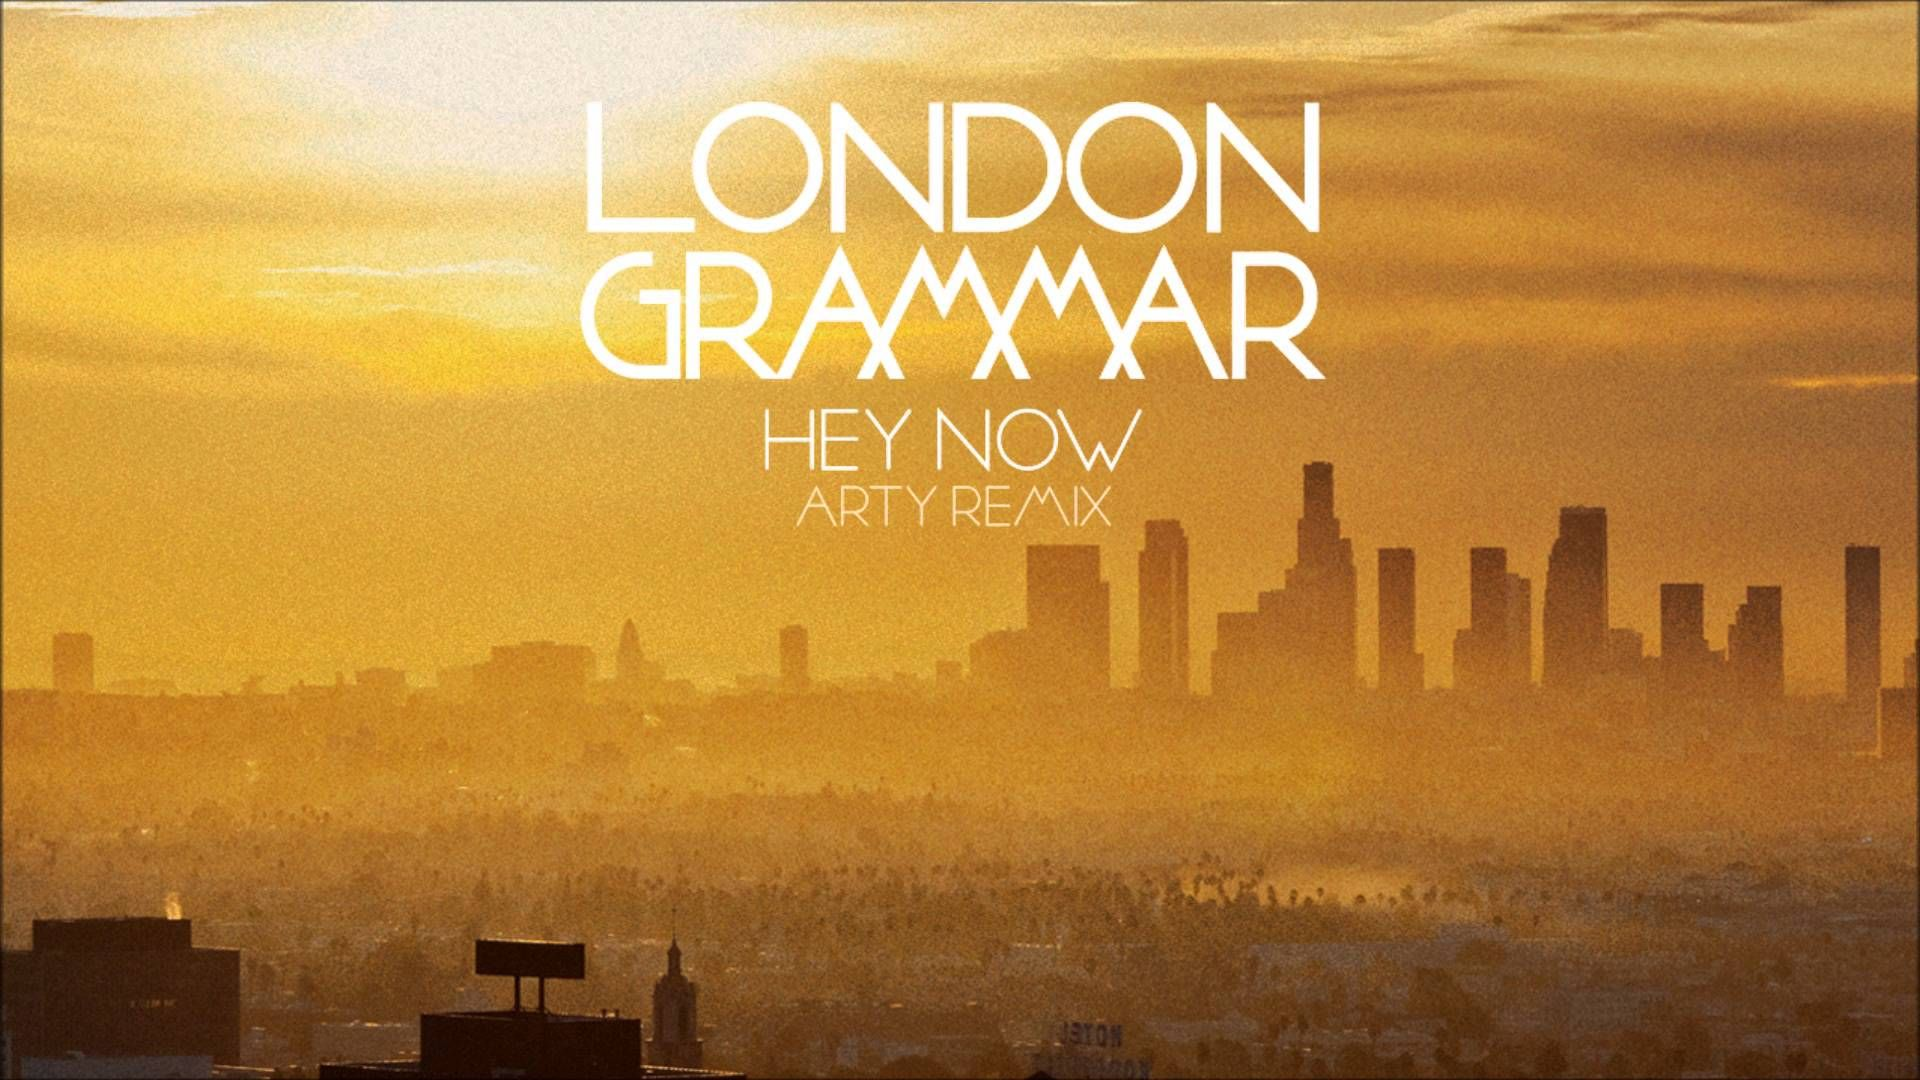 London Grammar Hey Now Arty Remix If Anything Sounded Like